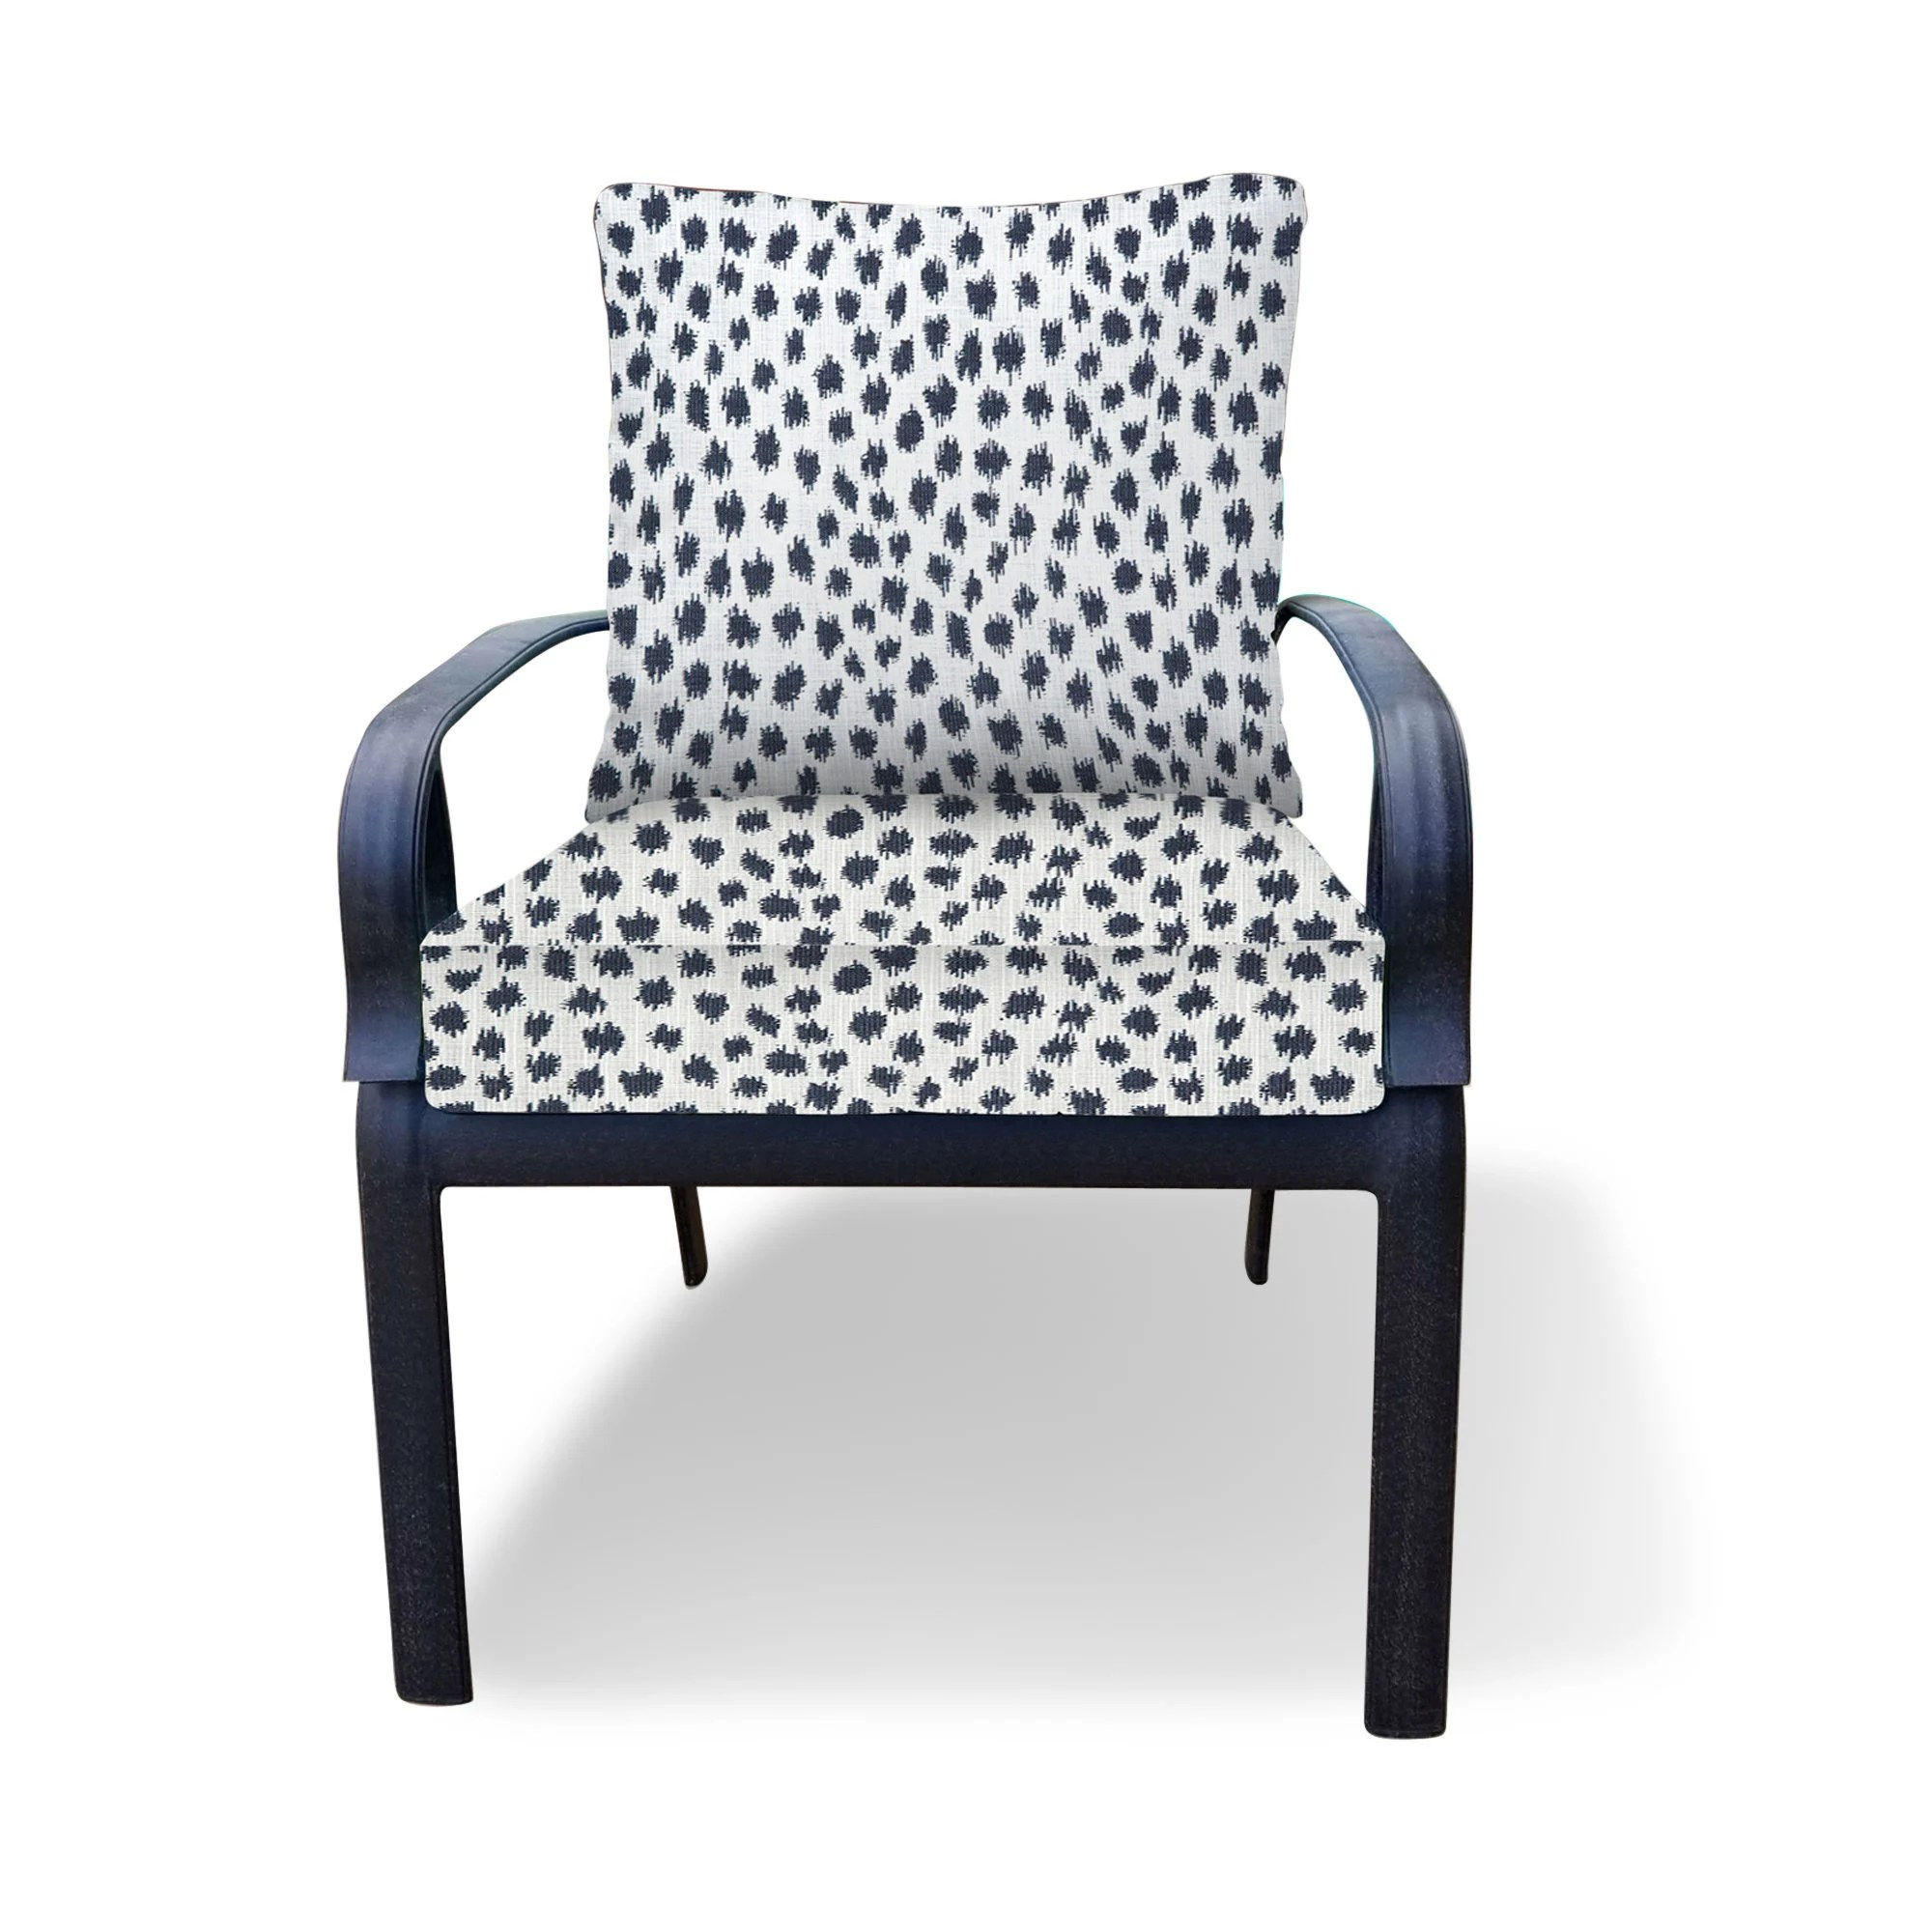 outdoor cushion dark blue white outdoor cushions for chair etsy